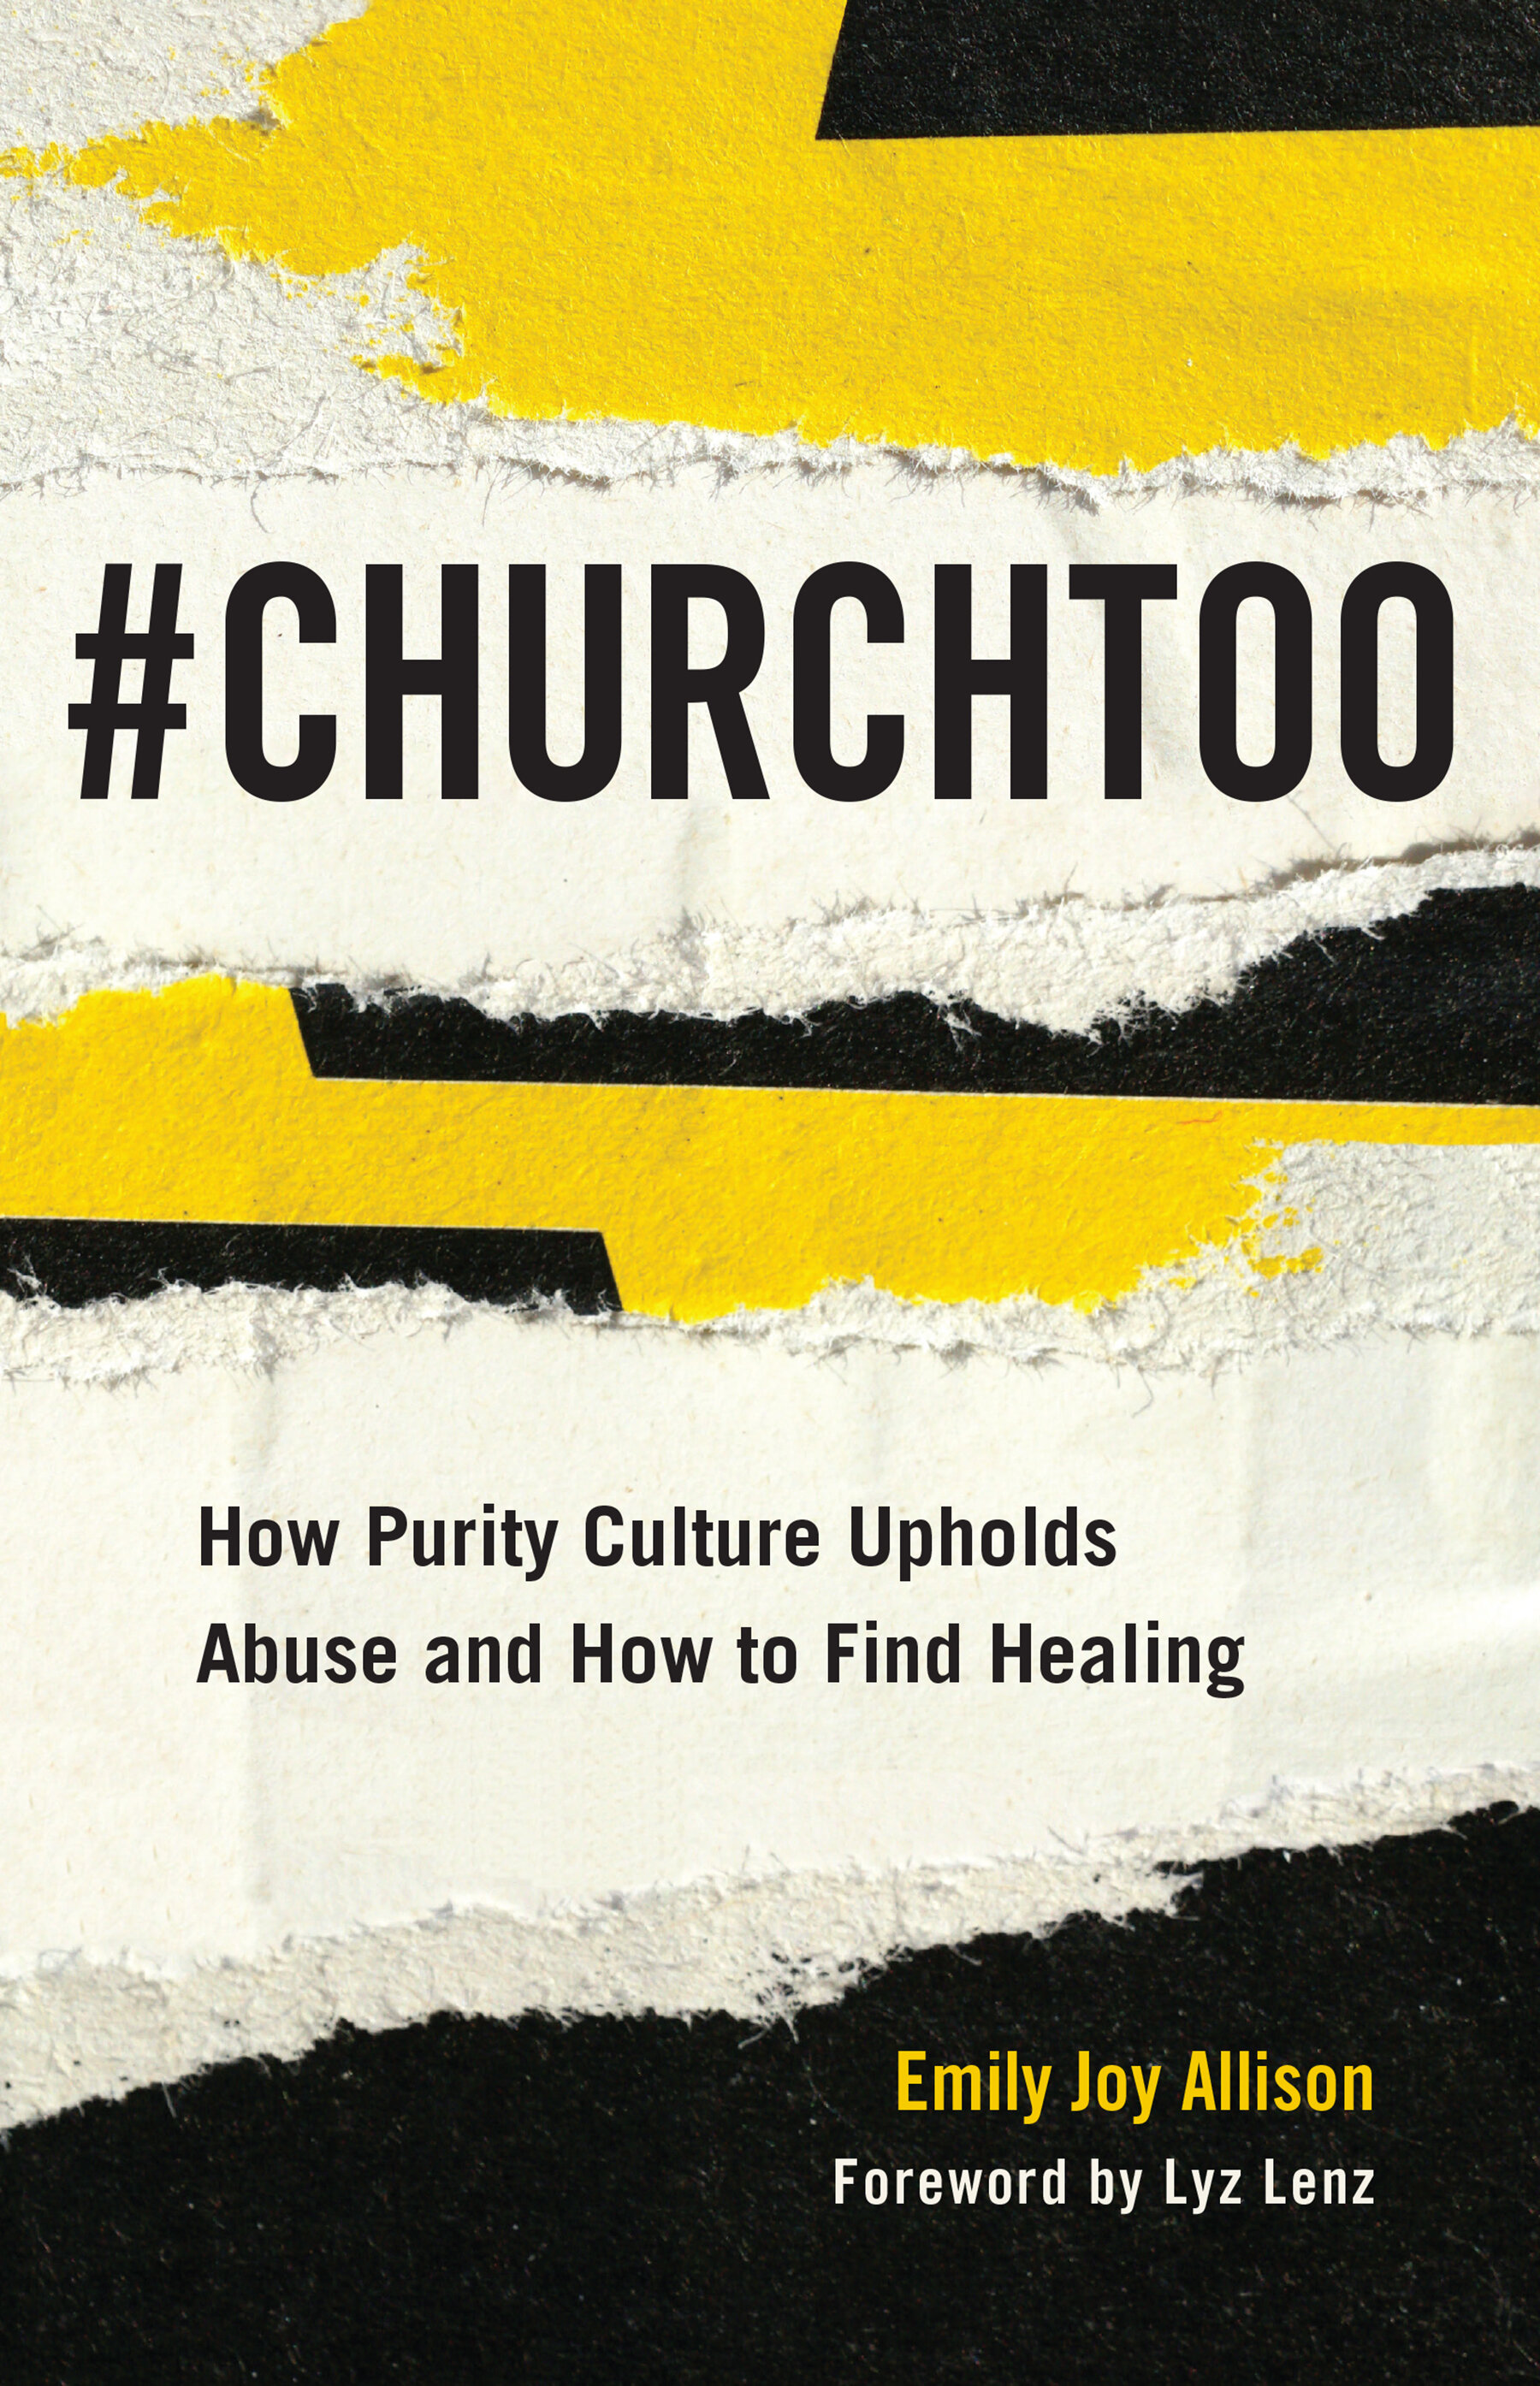 #ChurchToo: How Purity Culture Upholds Abuse and How to Find Healing